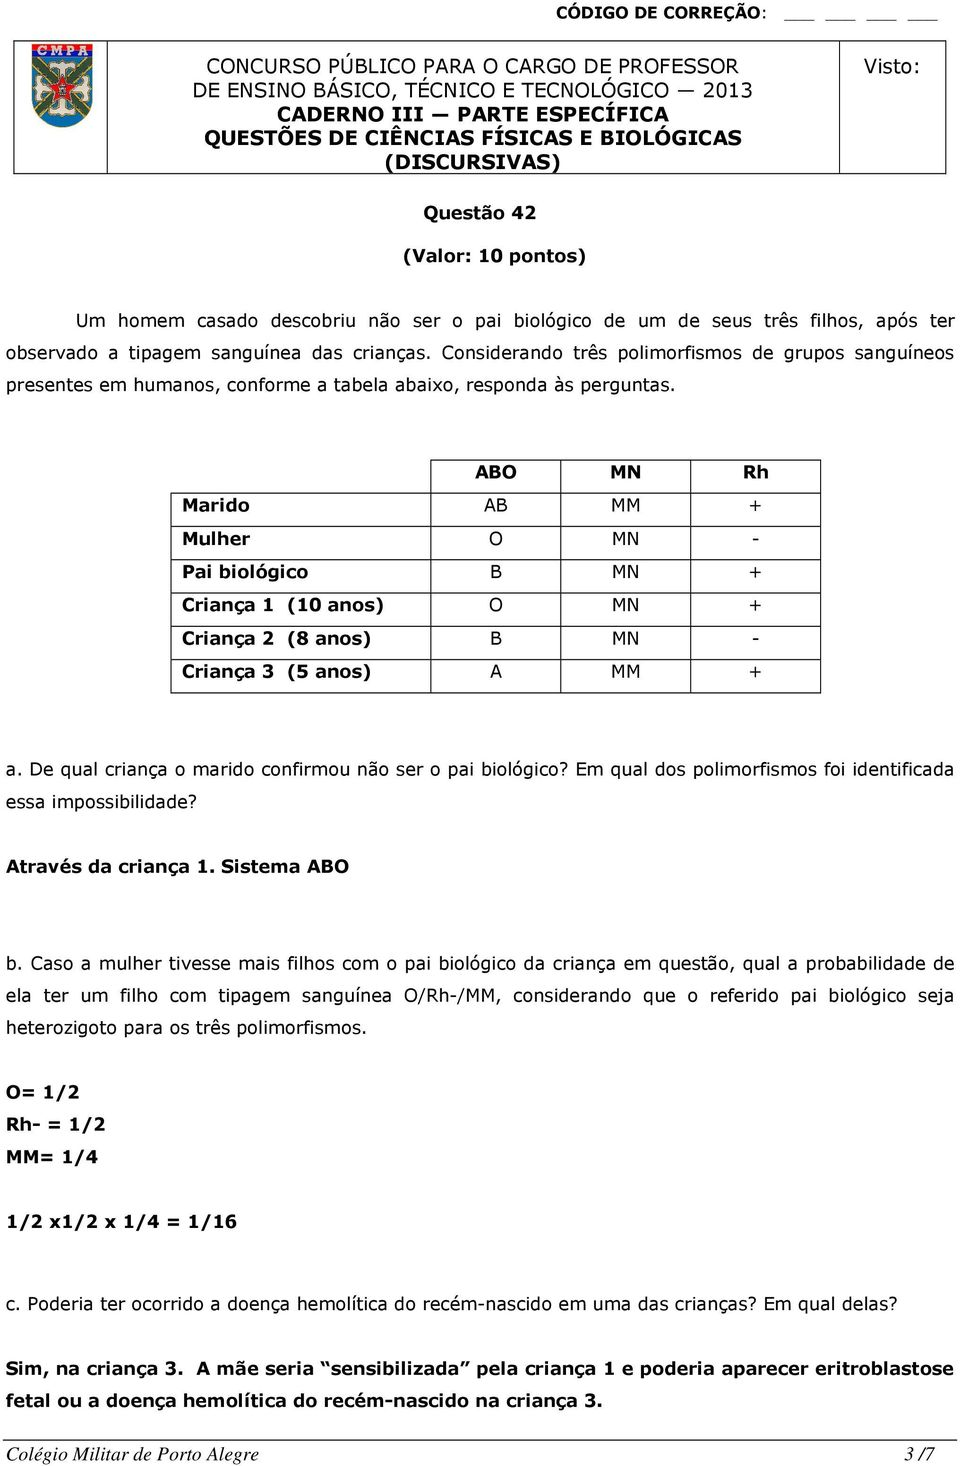 ABO MN Rh Marido AB MM + Mulher O MN - Pai biológico B MN + Criança 1 (10 anos) O MN + Criança 2 (8 anos) B MN - Criança 3 (5 anos) A MM + a.